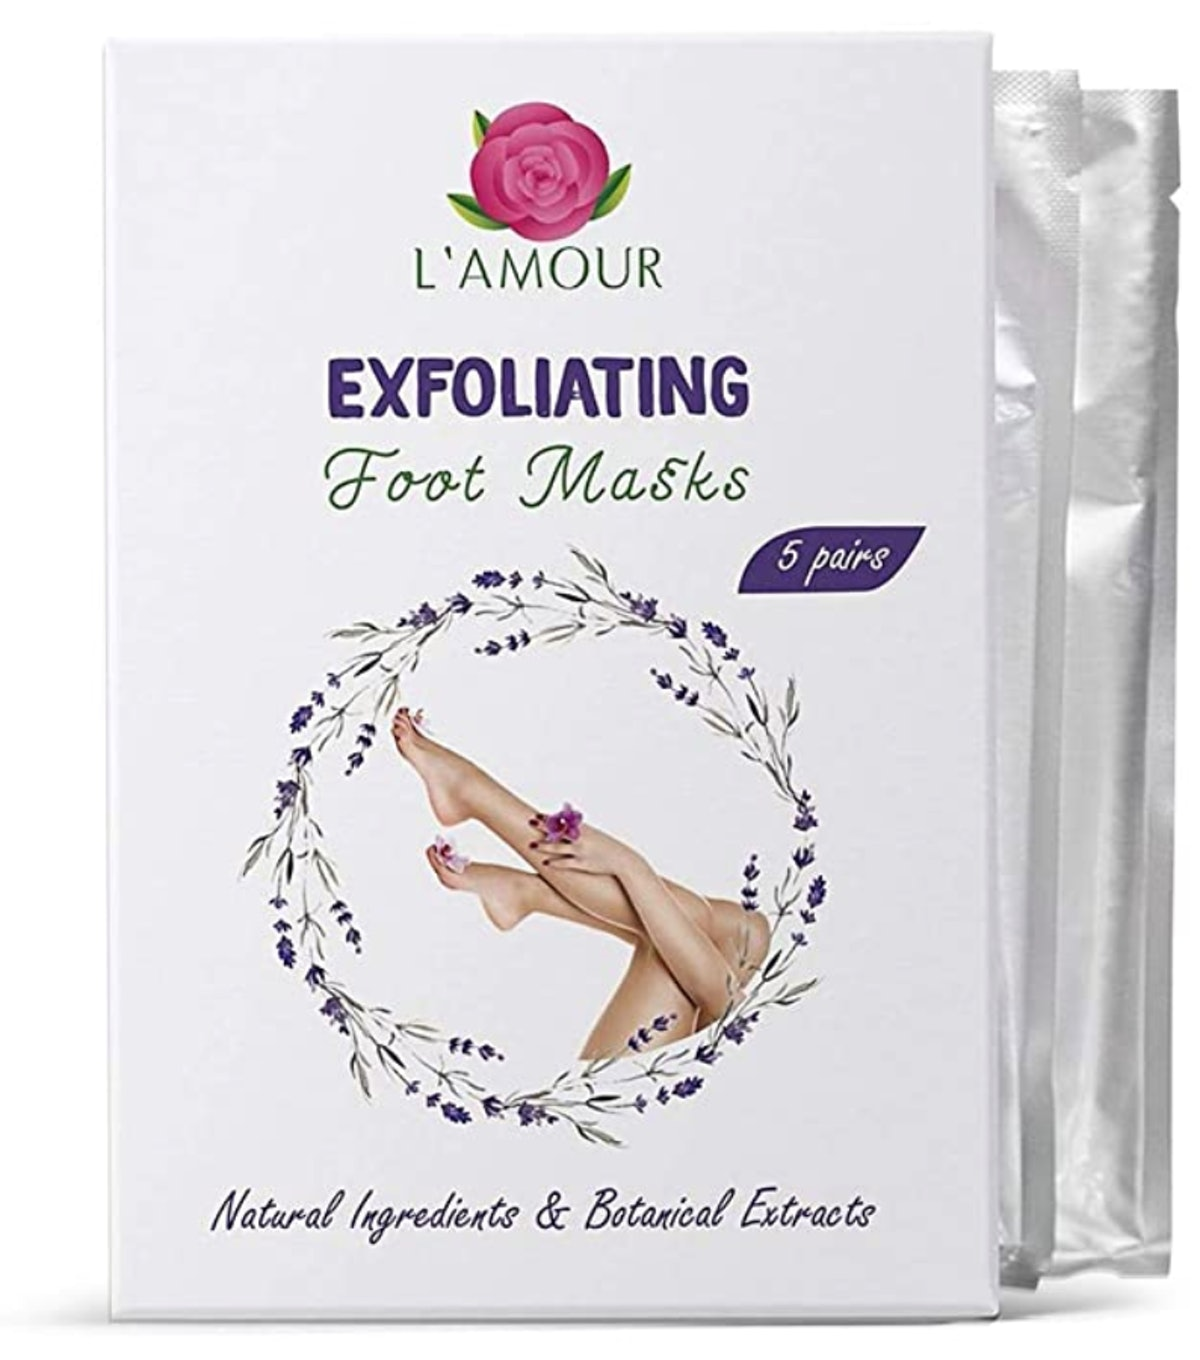 L'AMOUR 5 Pairs of Exfoliating Foot Peeling Masks